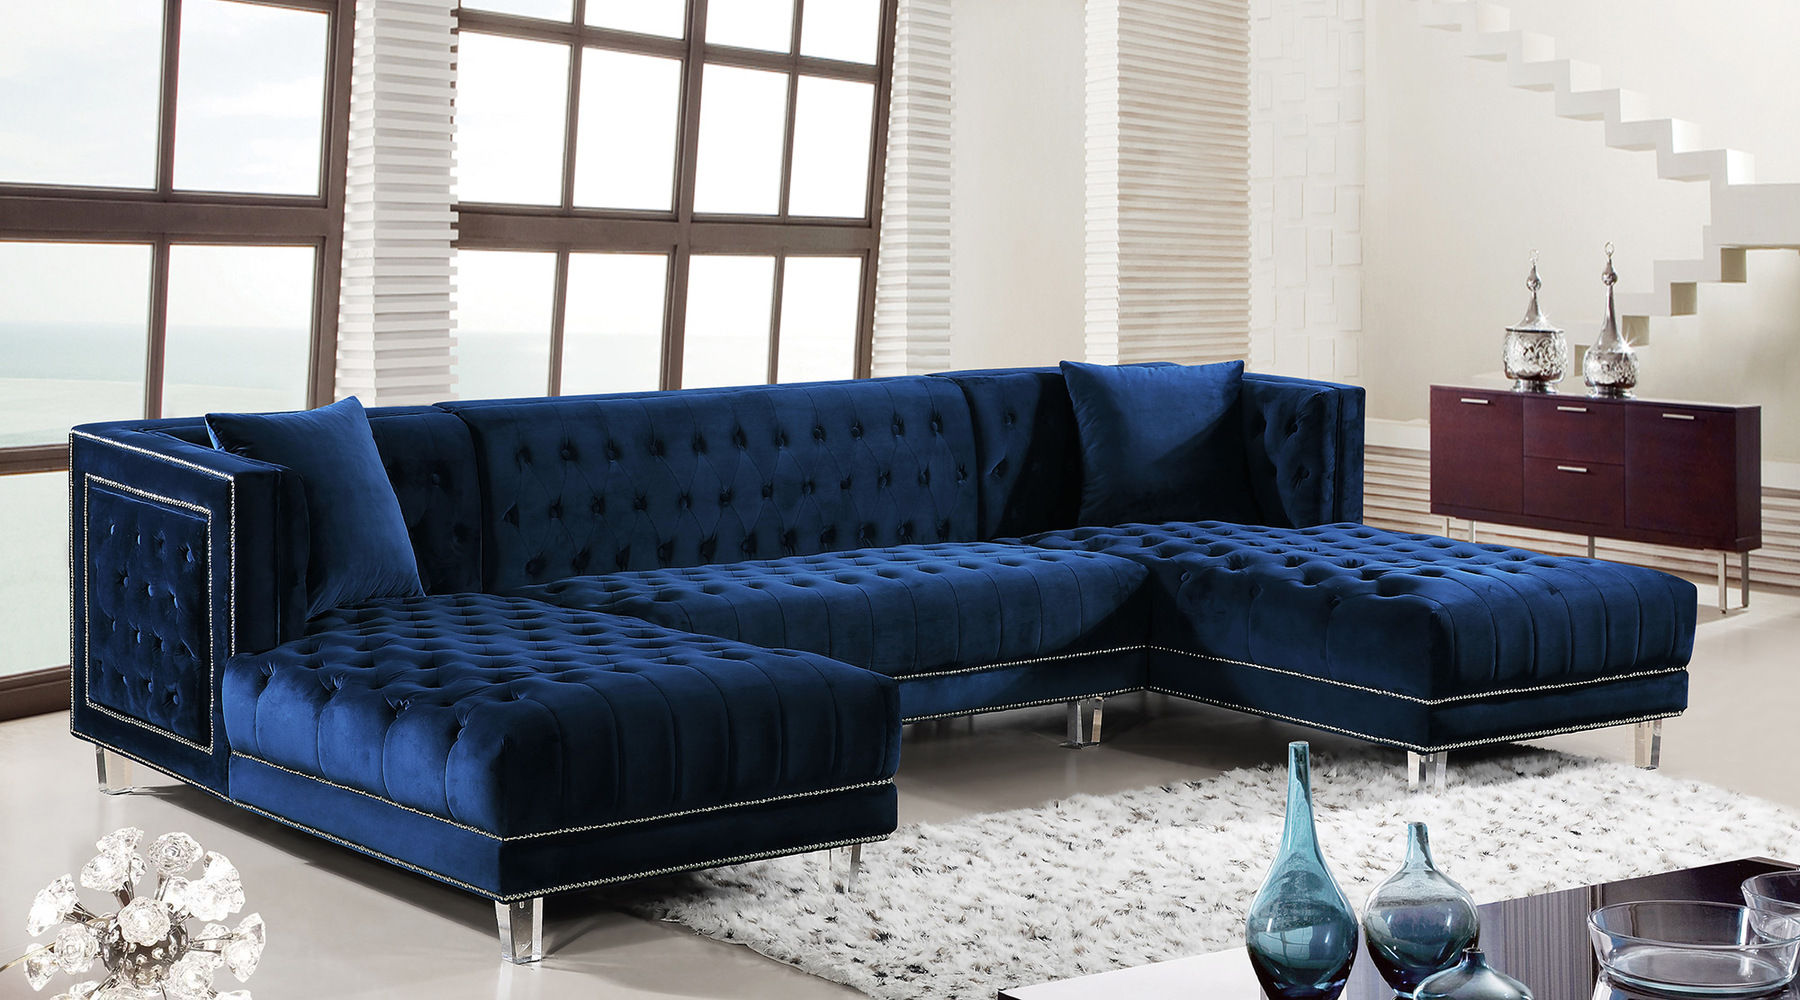 Moda Blue Sectional Sofa 631 Suzanne Meridian Furniture Sectional Sofas Comfyco Furniture